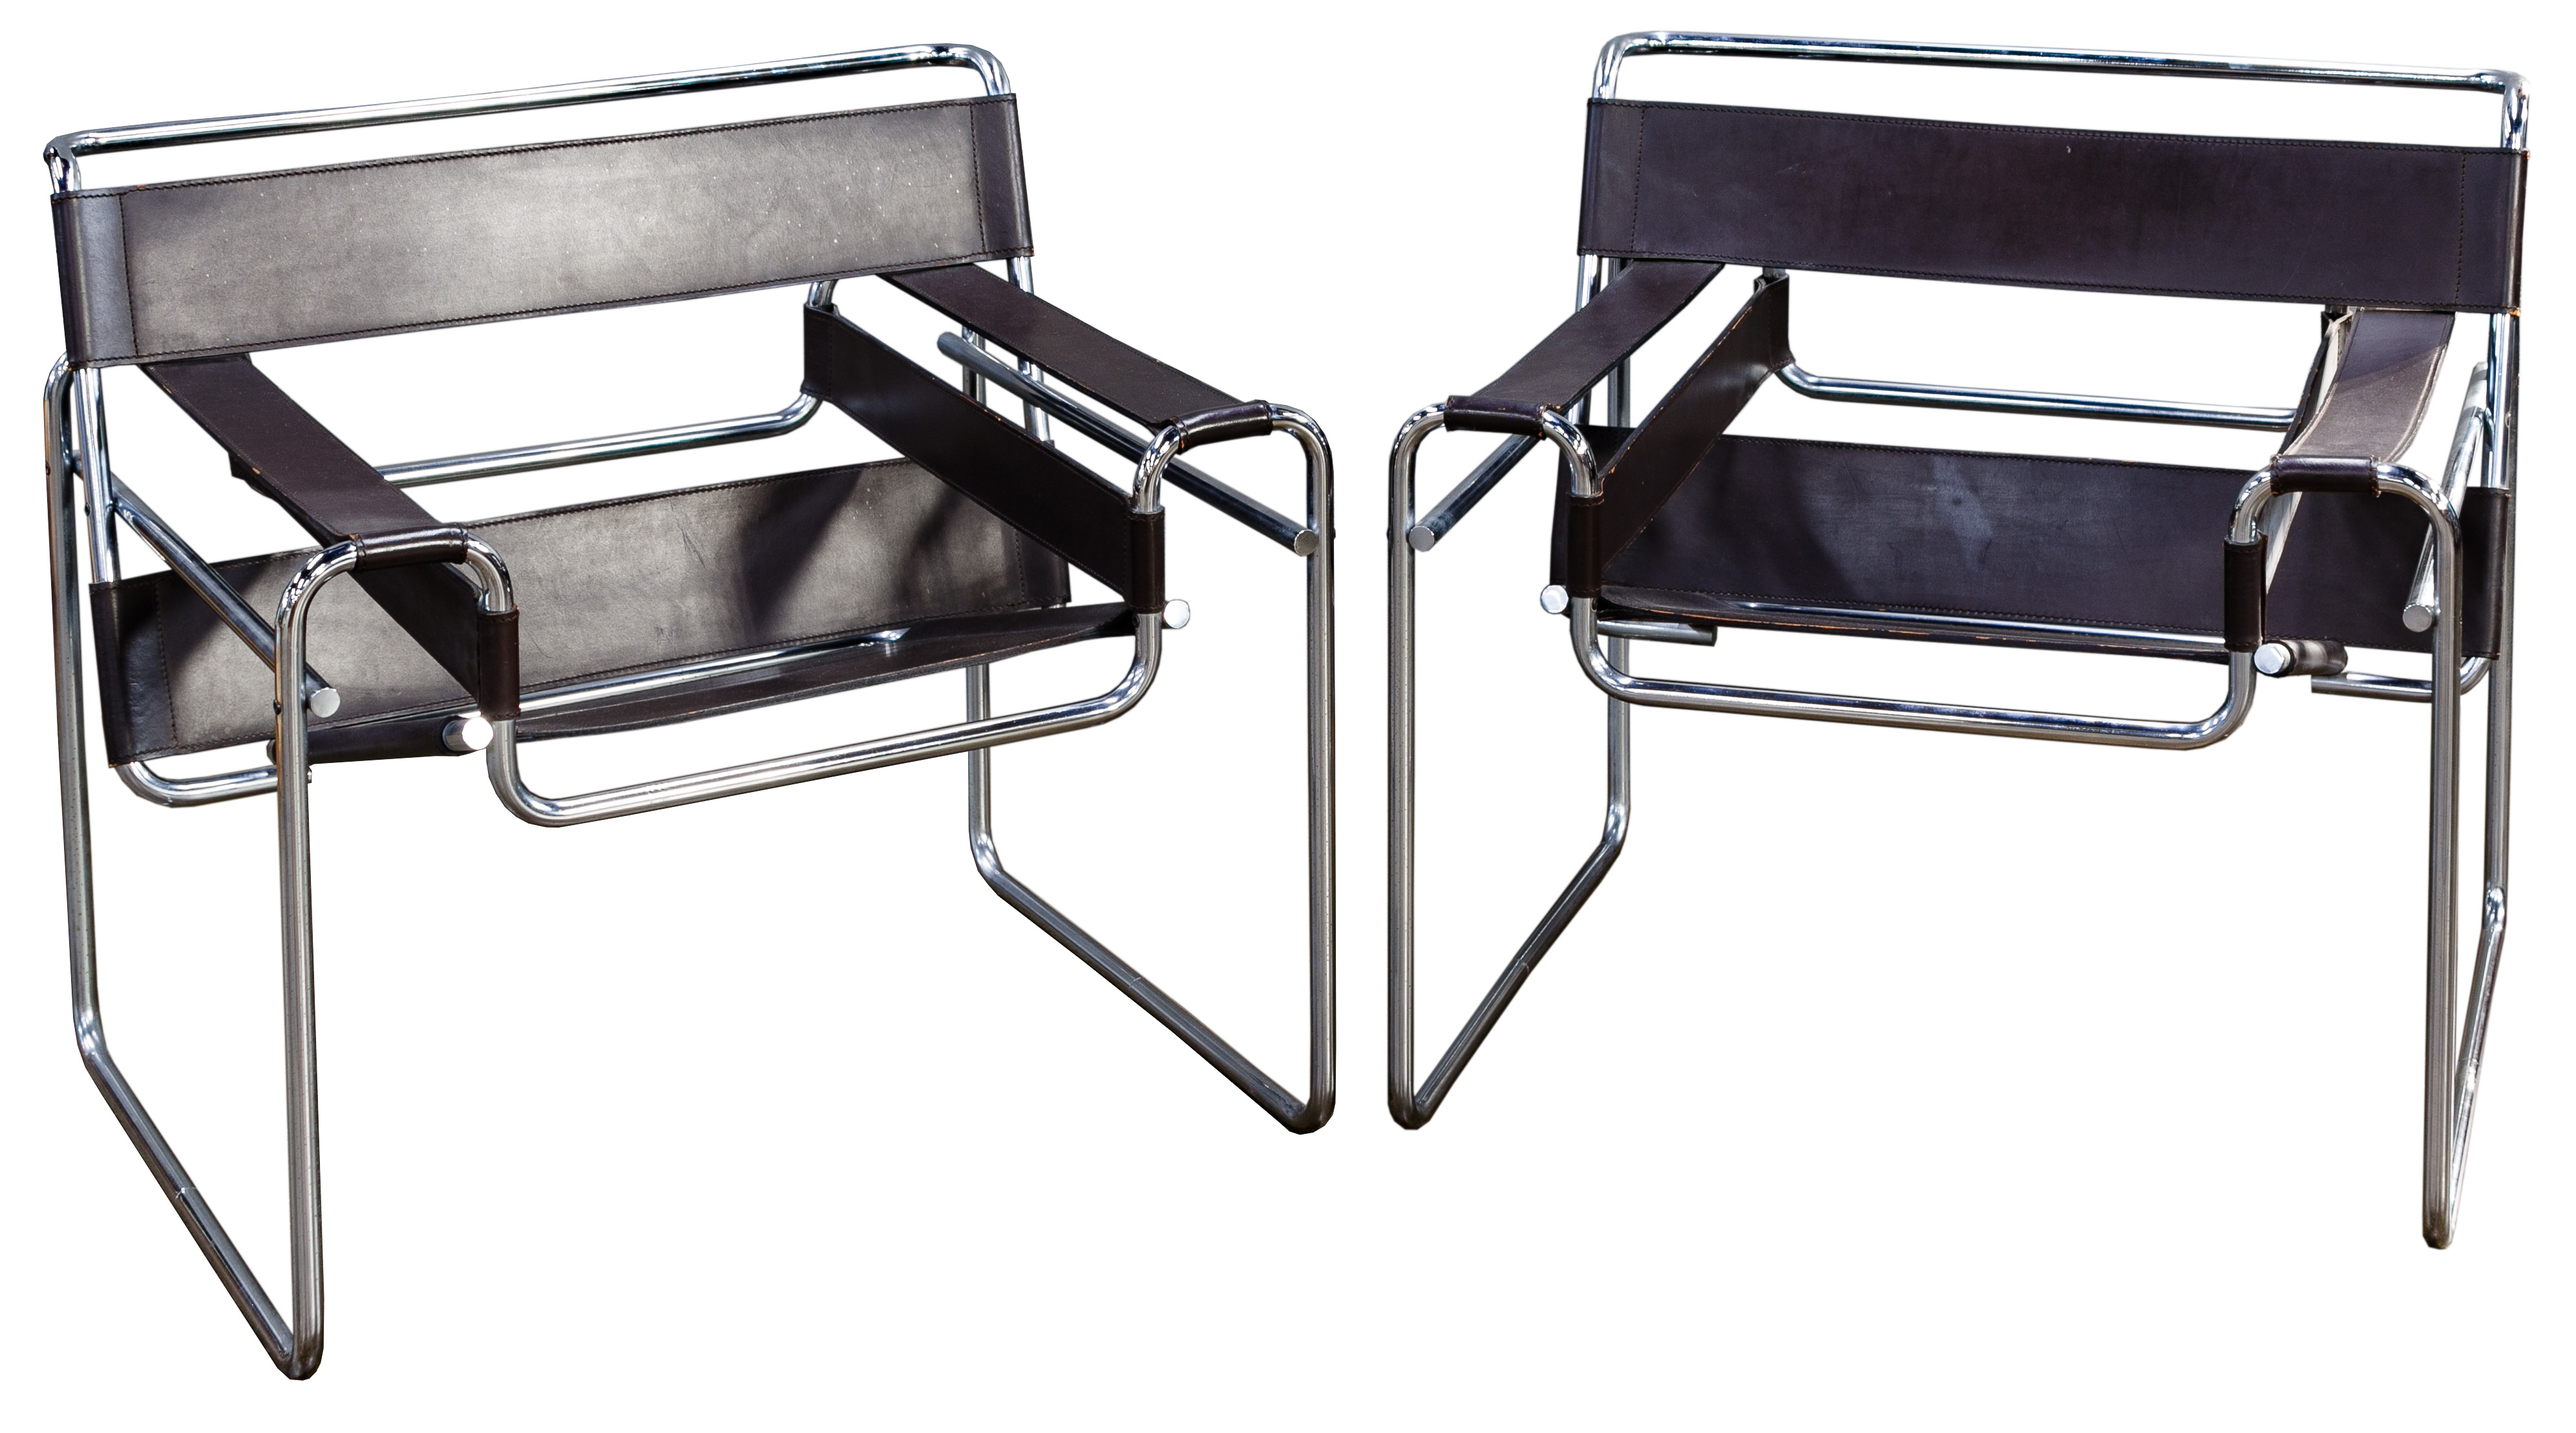 wassily chair brown leather rail molding home depot marcel breuer chairs for stendig image 1